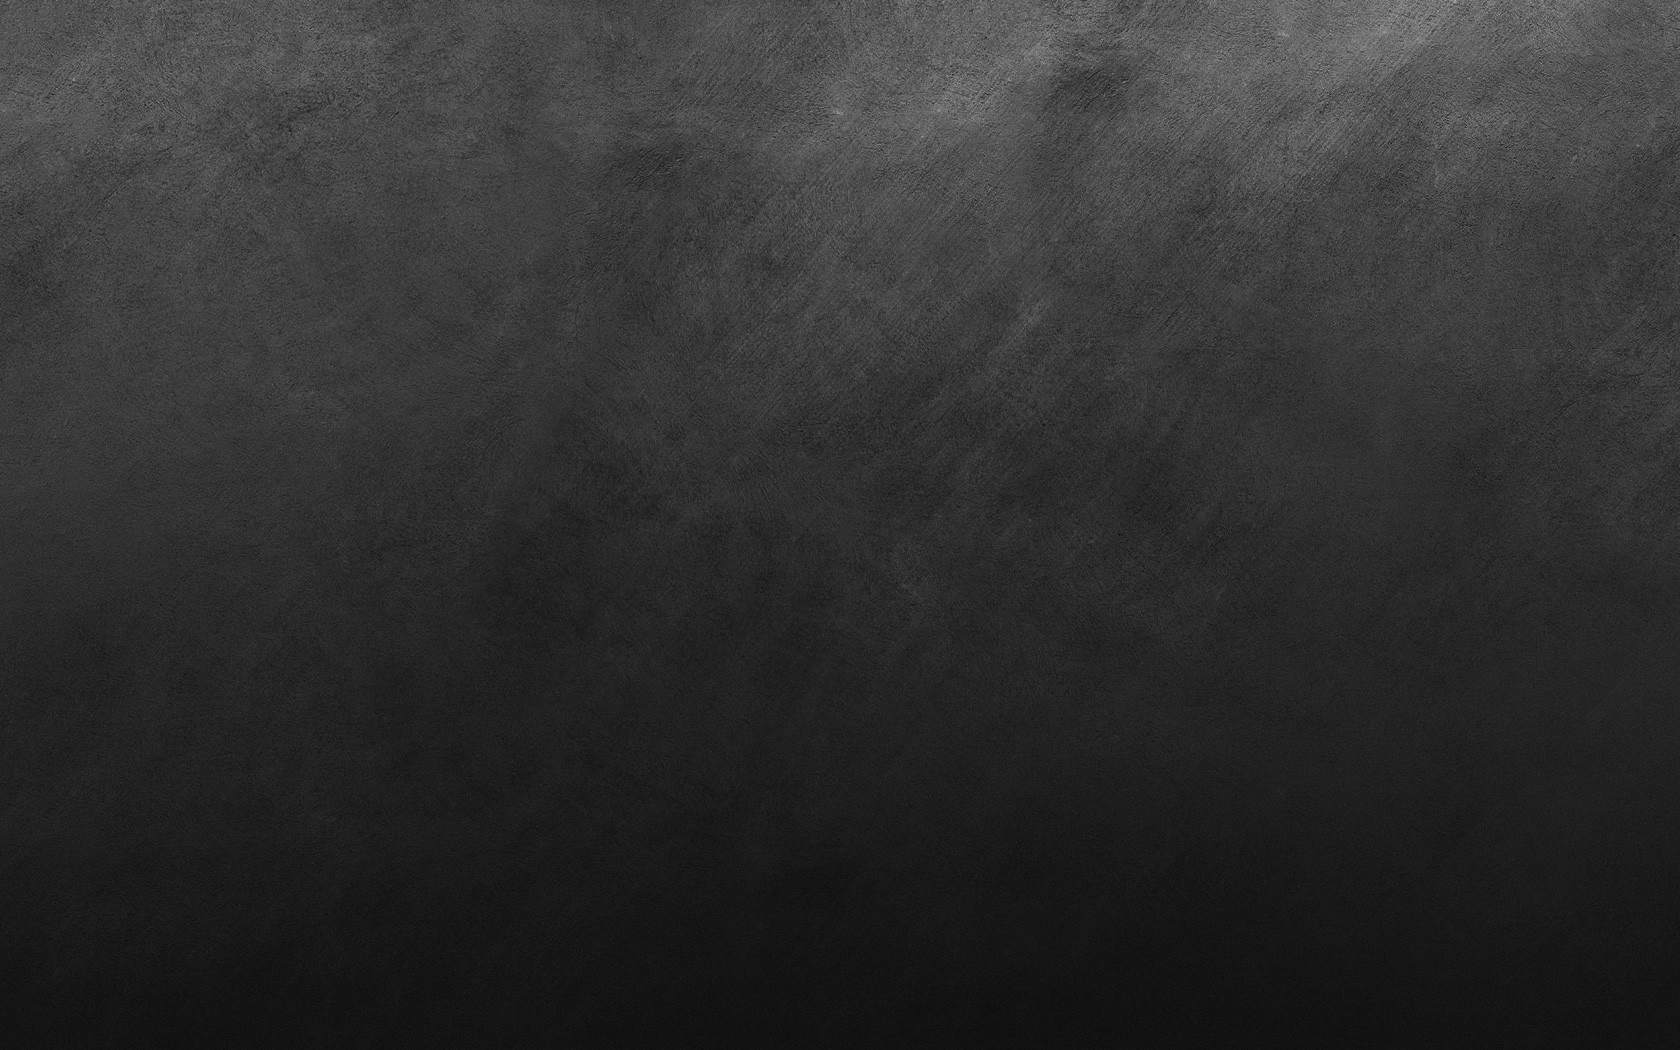 Dark gray wallpapers wallpapersafari for Black and grey wallpaper designs